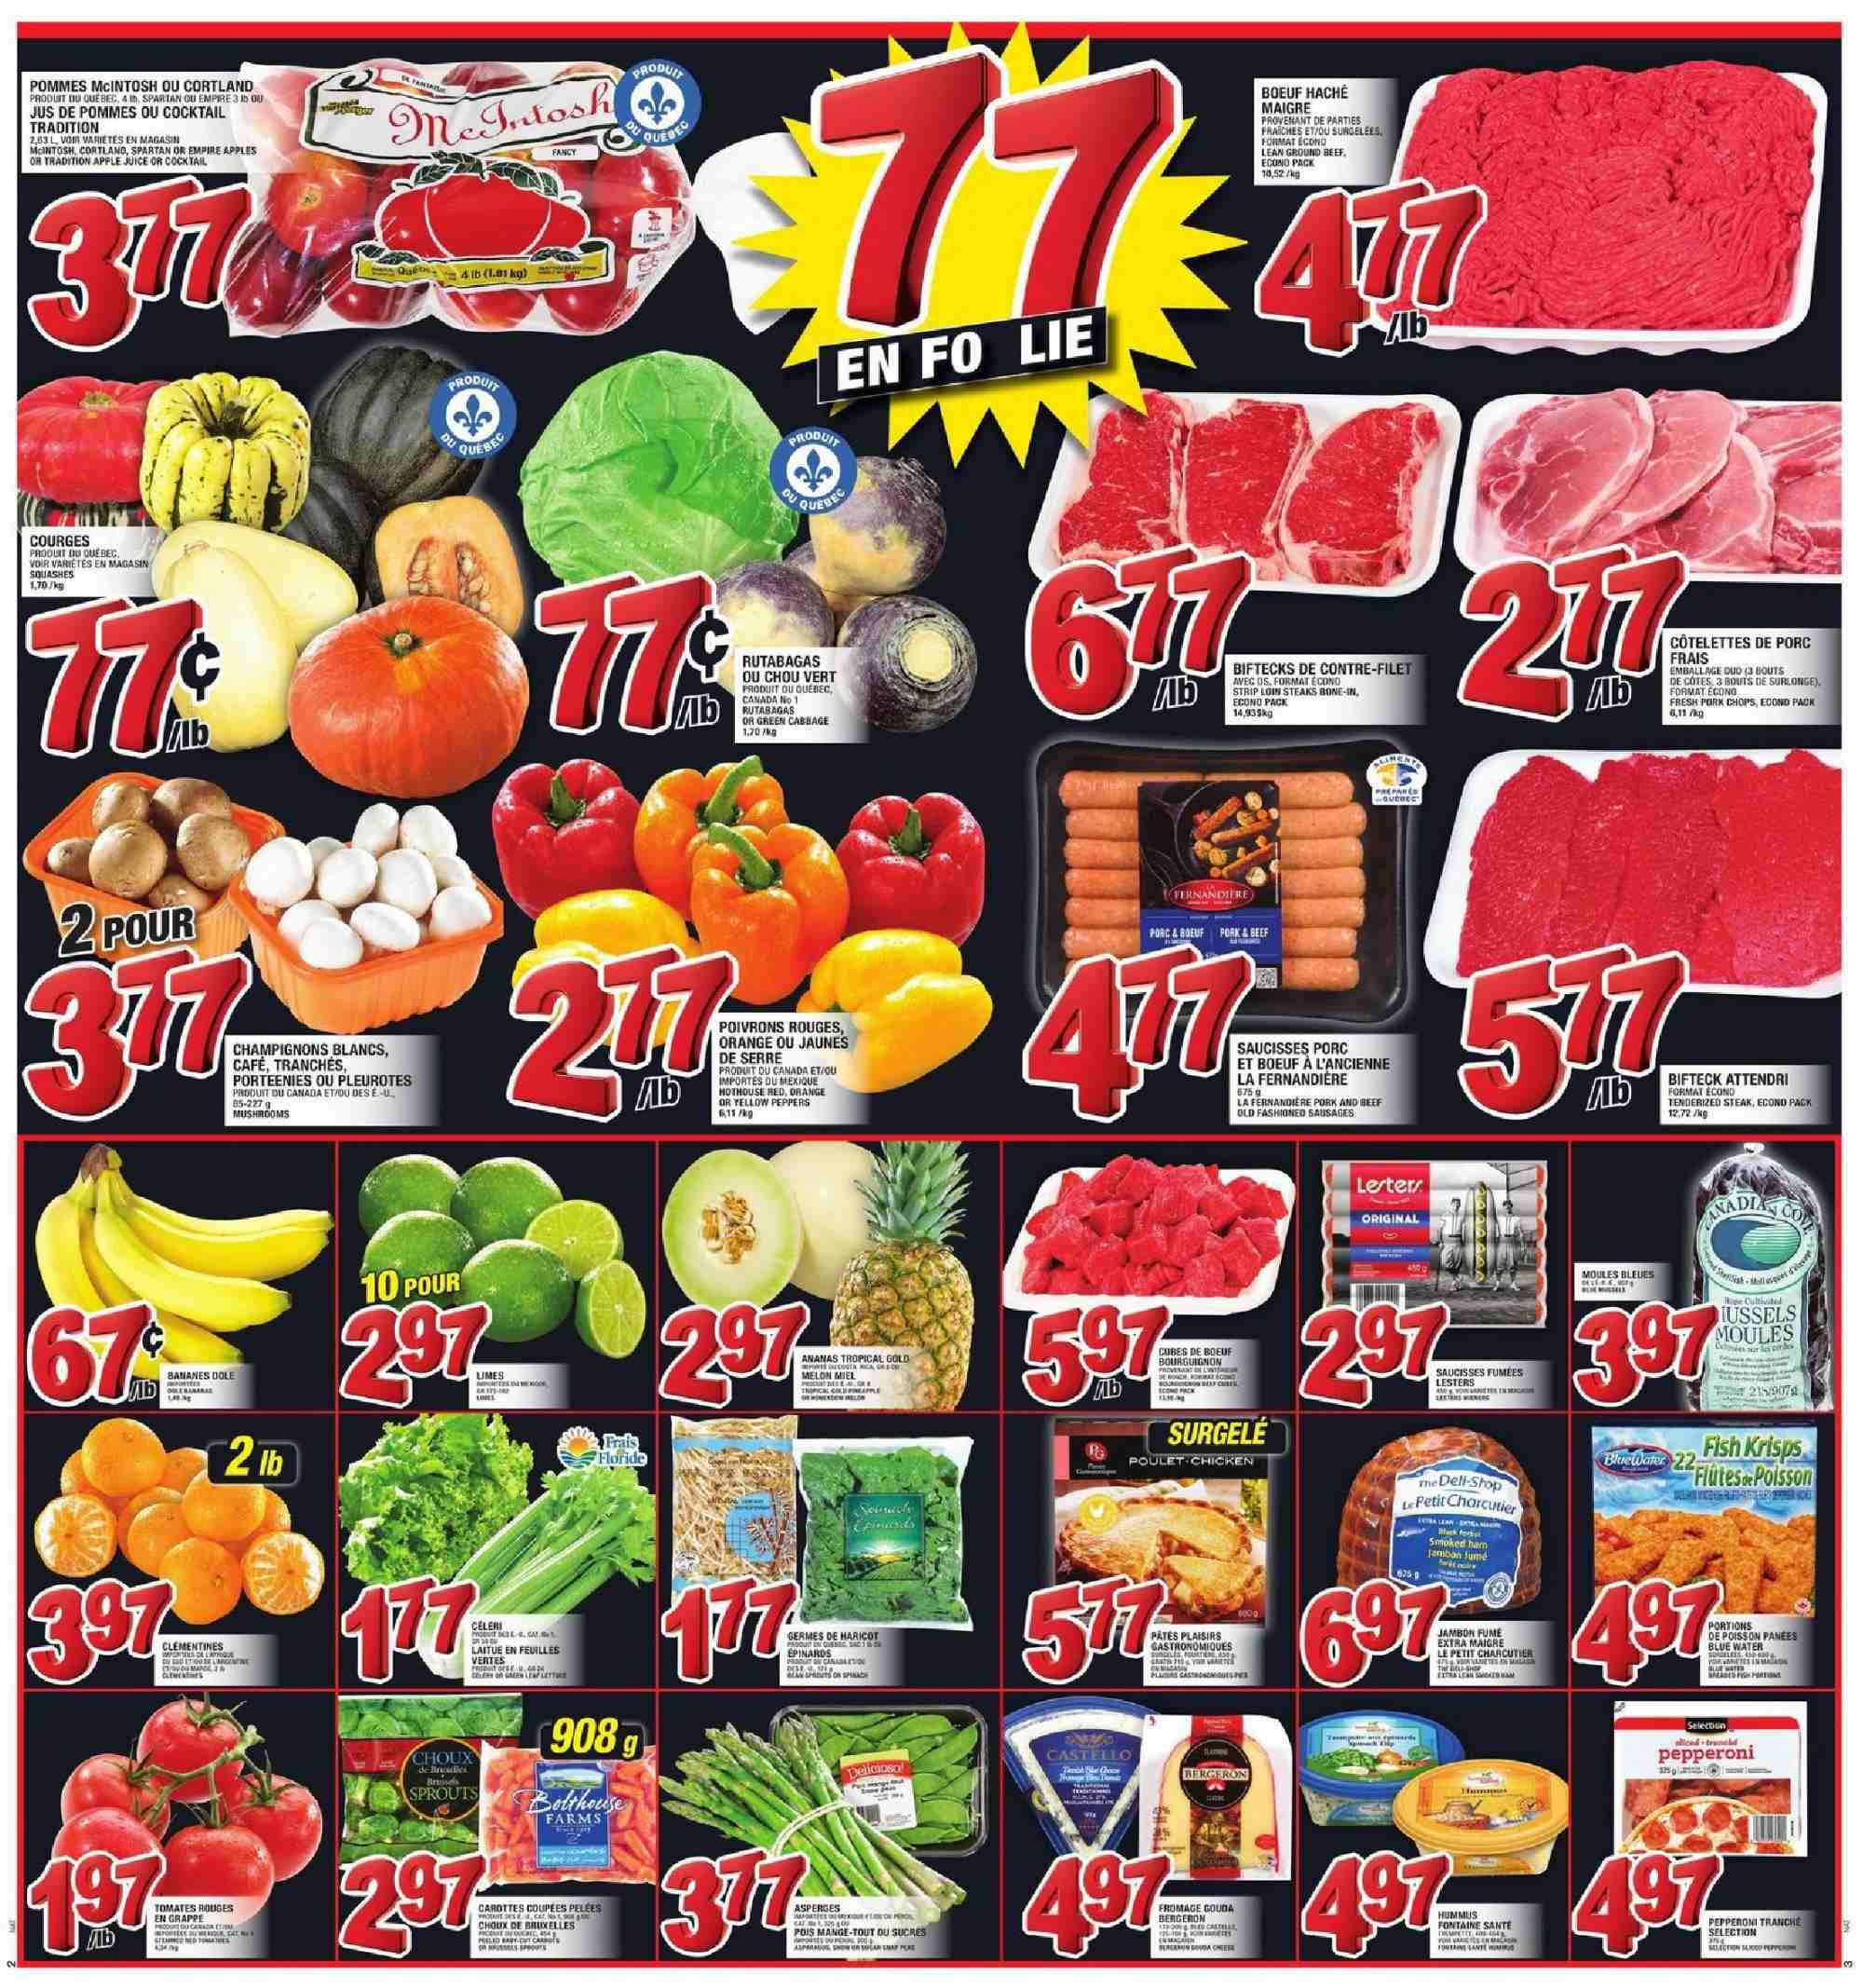 Super C Flyer - October 25, 2018 - October 31, 2018 - Sales products - apple juice, apples, beef meat, cabbage, clémentines, gouda, sausages, hummus, pork chops, pork meat, pepperoni, steak, juice, melon, tomates, pommes, cafe, porc, jambon, champignon, ananas, banane, bœuf, feuilles, fromage, haricot, chou, moules farcies, mcintosh, orange, saucisse, poivrons, pâtes, jus. Page 3.